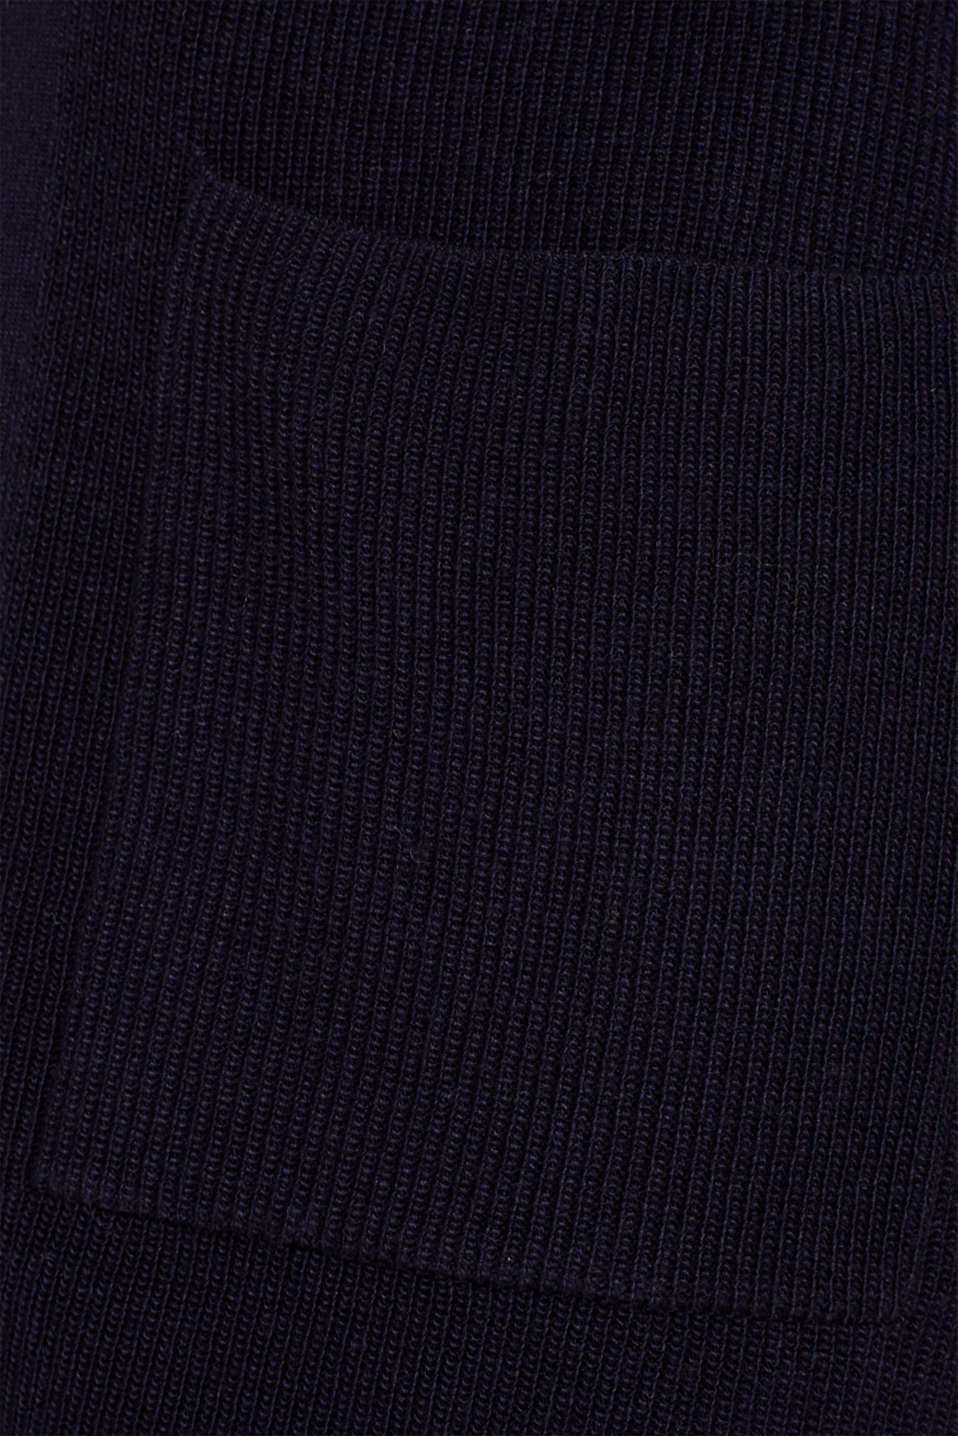 With cashmere: Long, rib knit cardigan, NAVY 2, detail image number 4